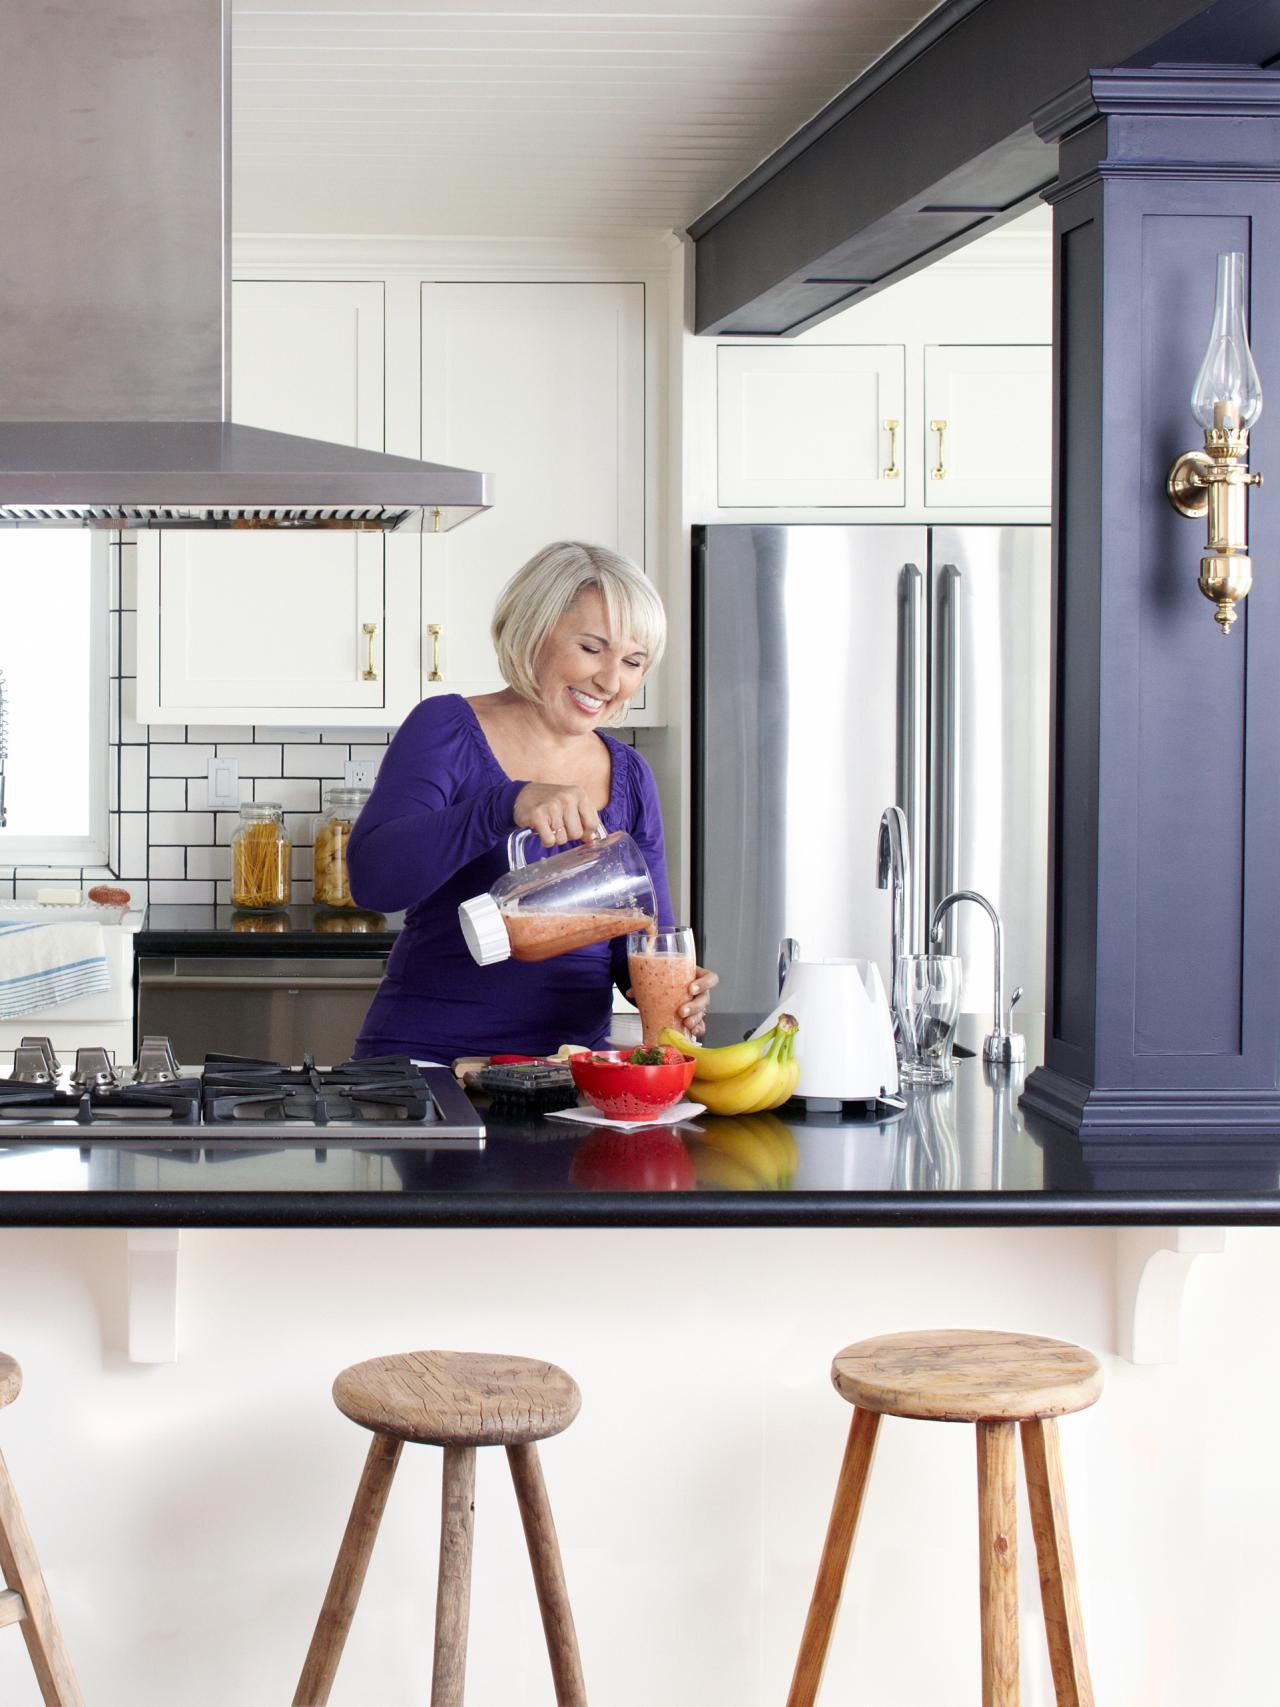 Kitchen Chronicles: I'm in Love With My Kitchen Makeover